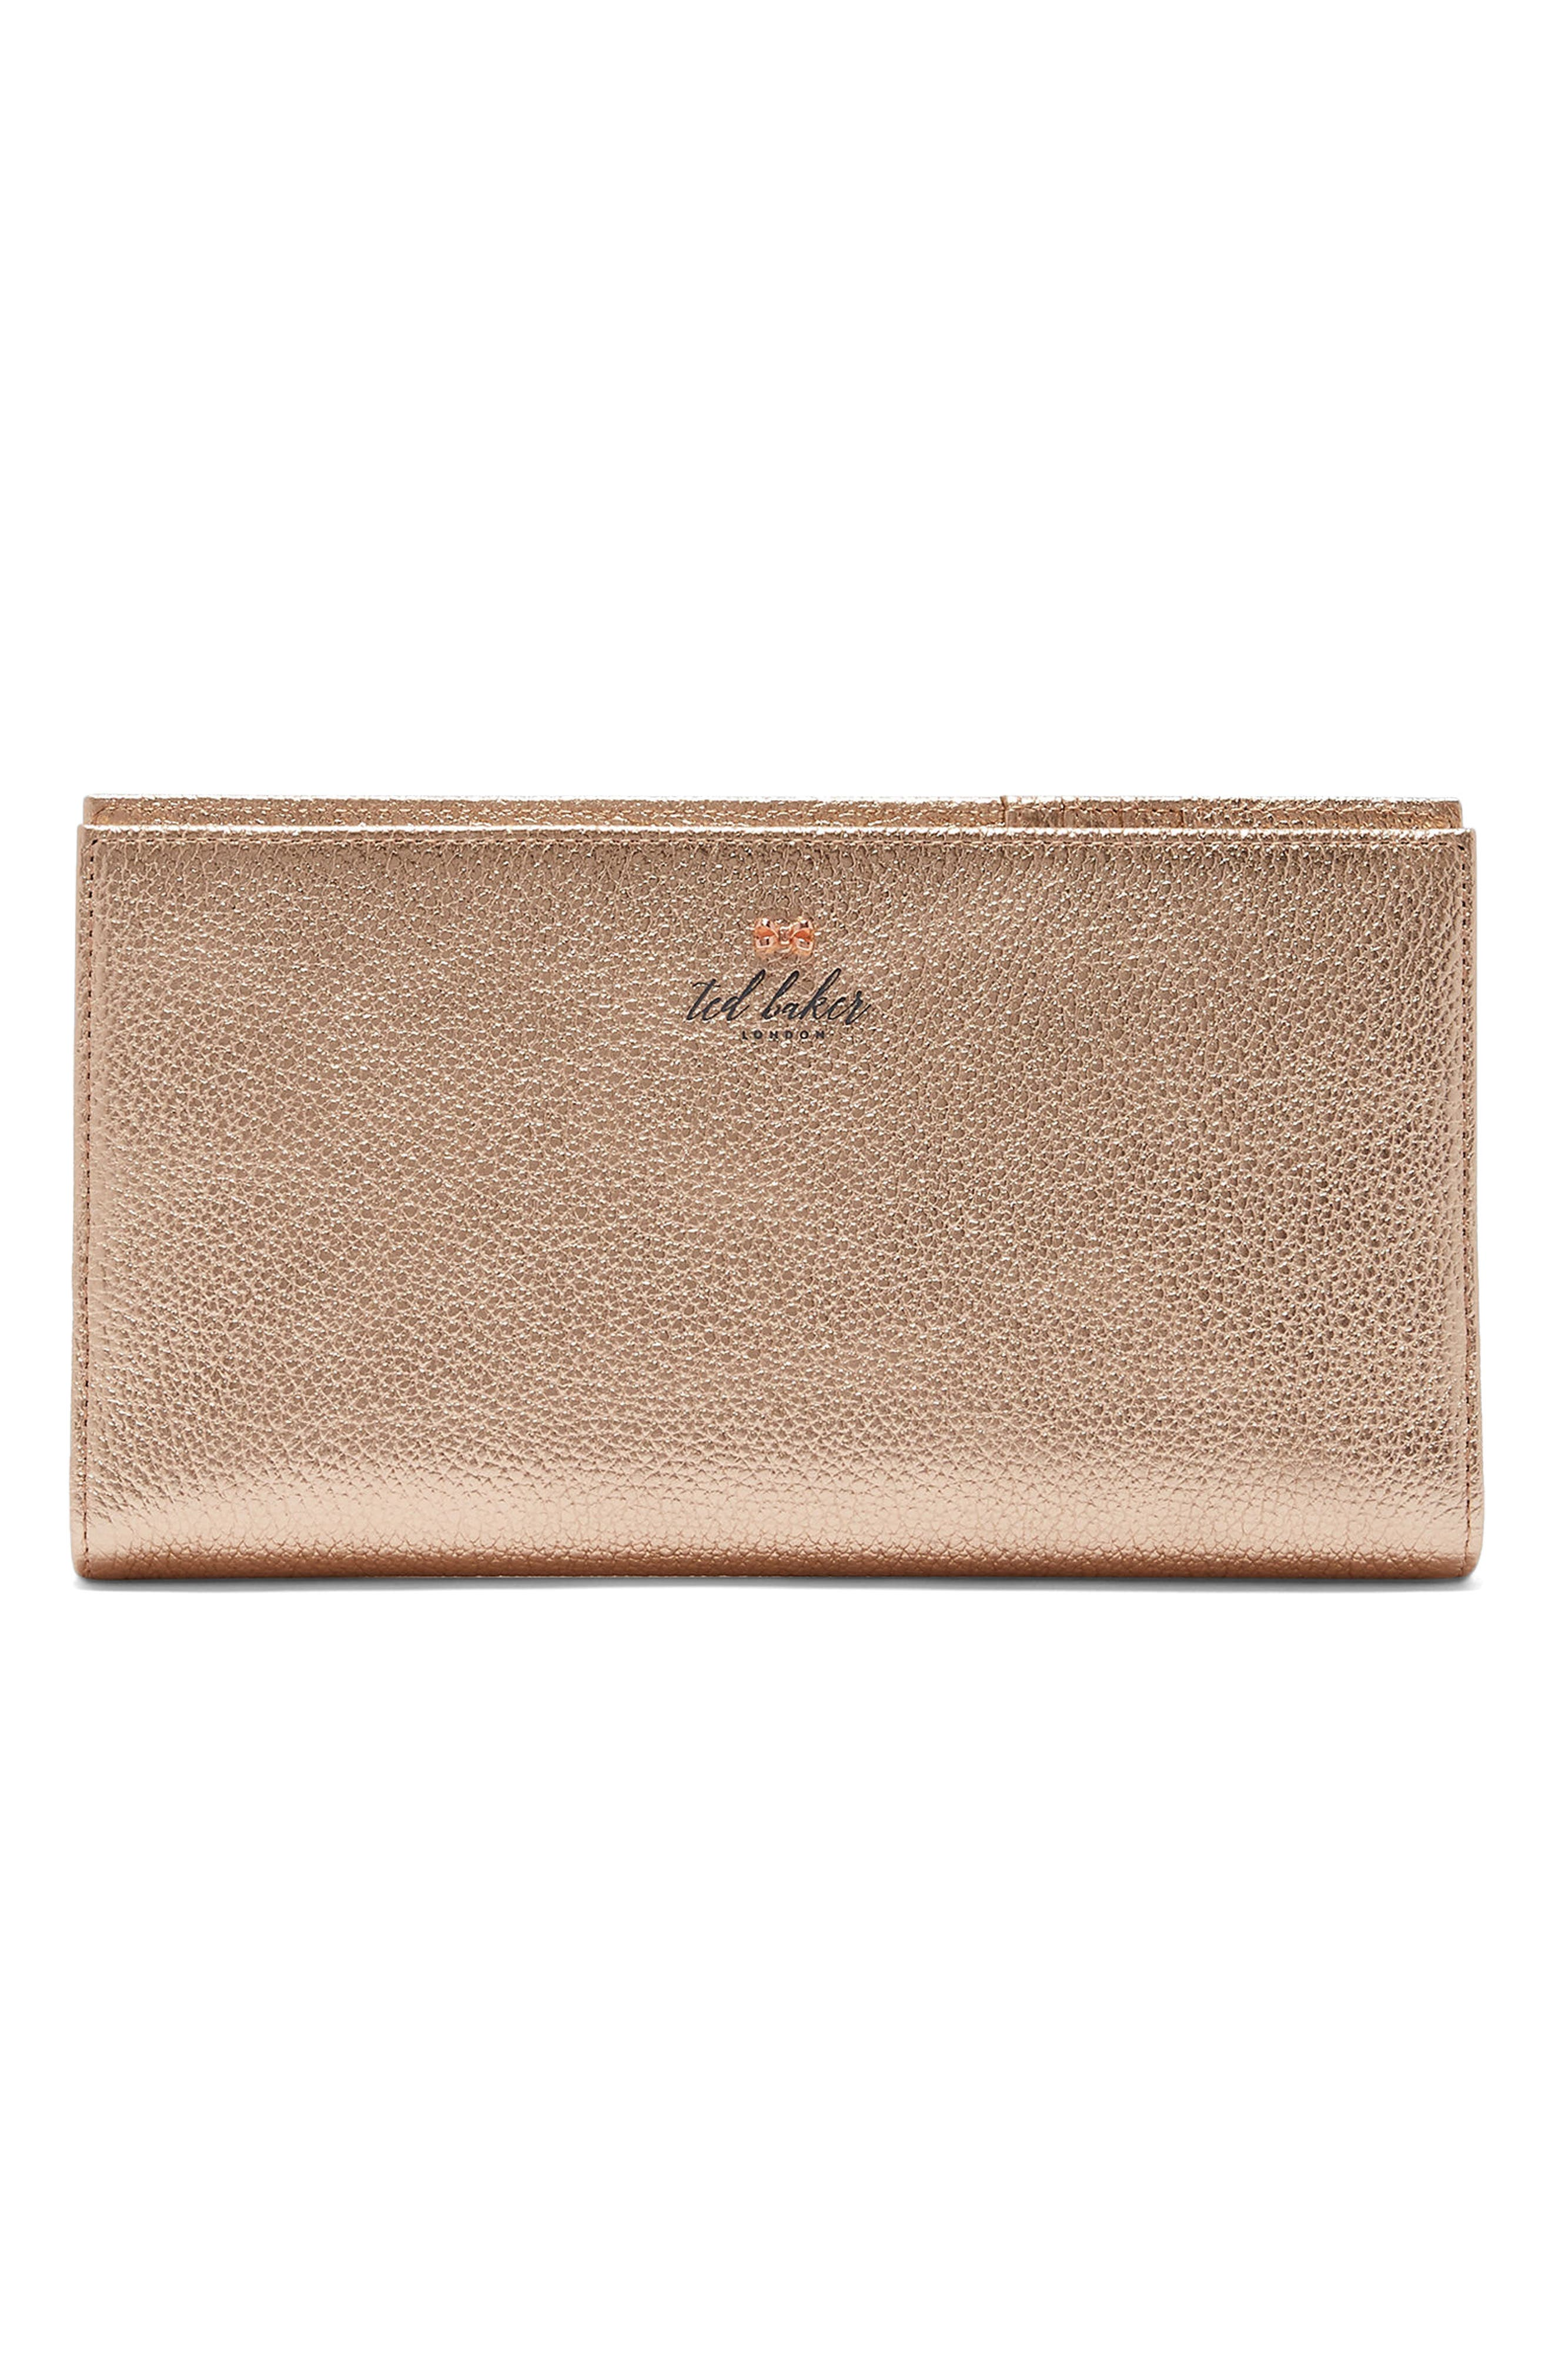 Kayy Metallic Leather Travel Wallet,                         Main,                         color, Rose Gold